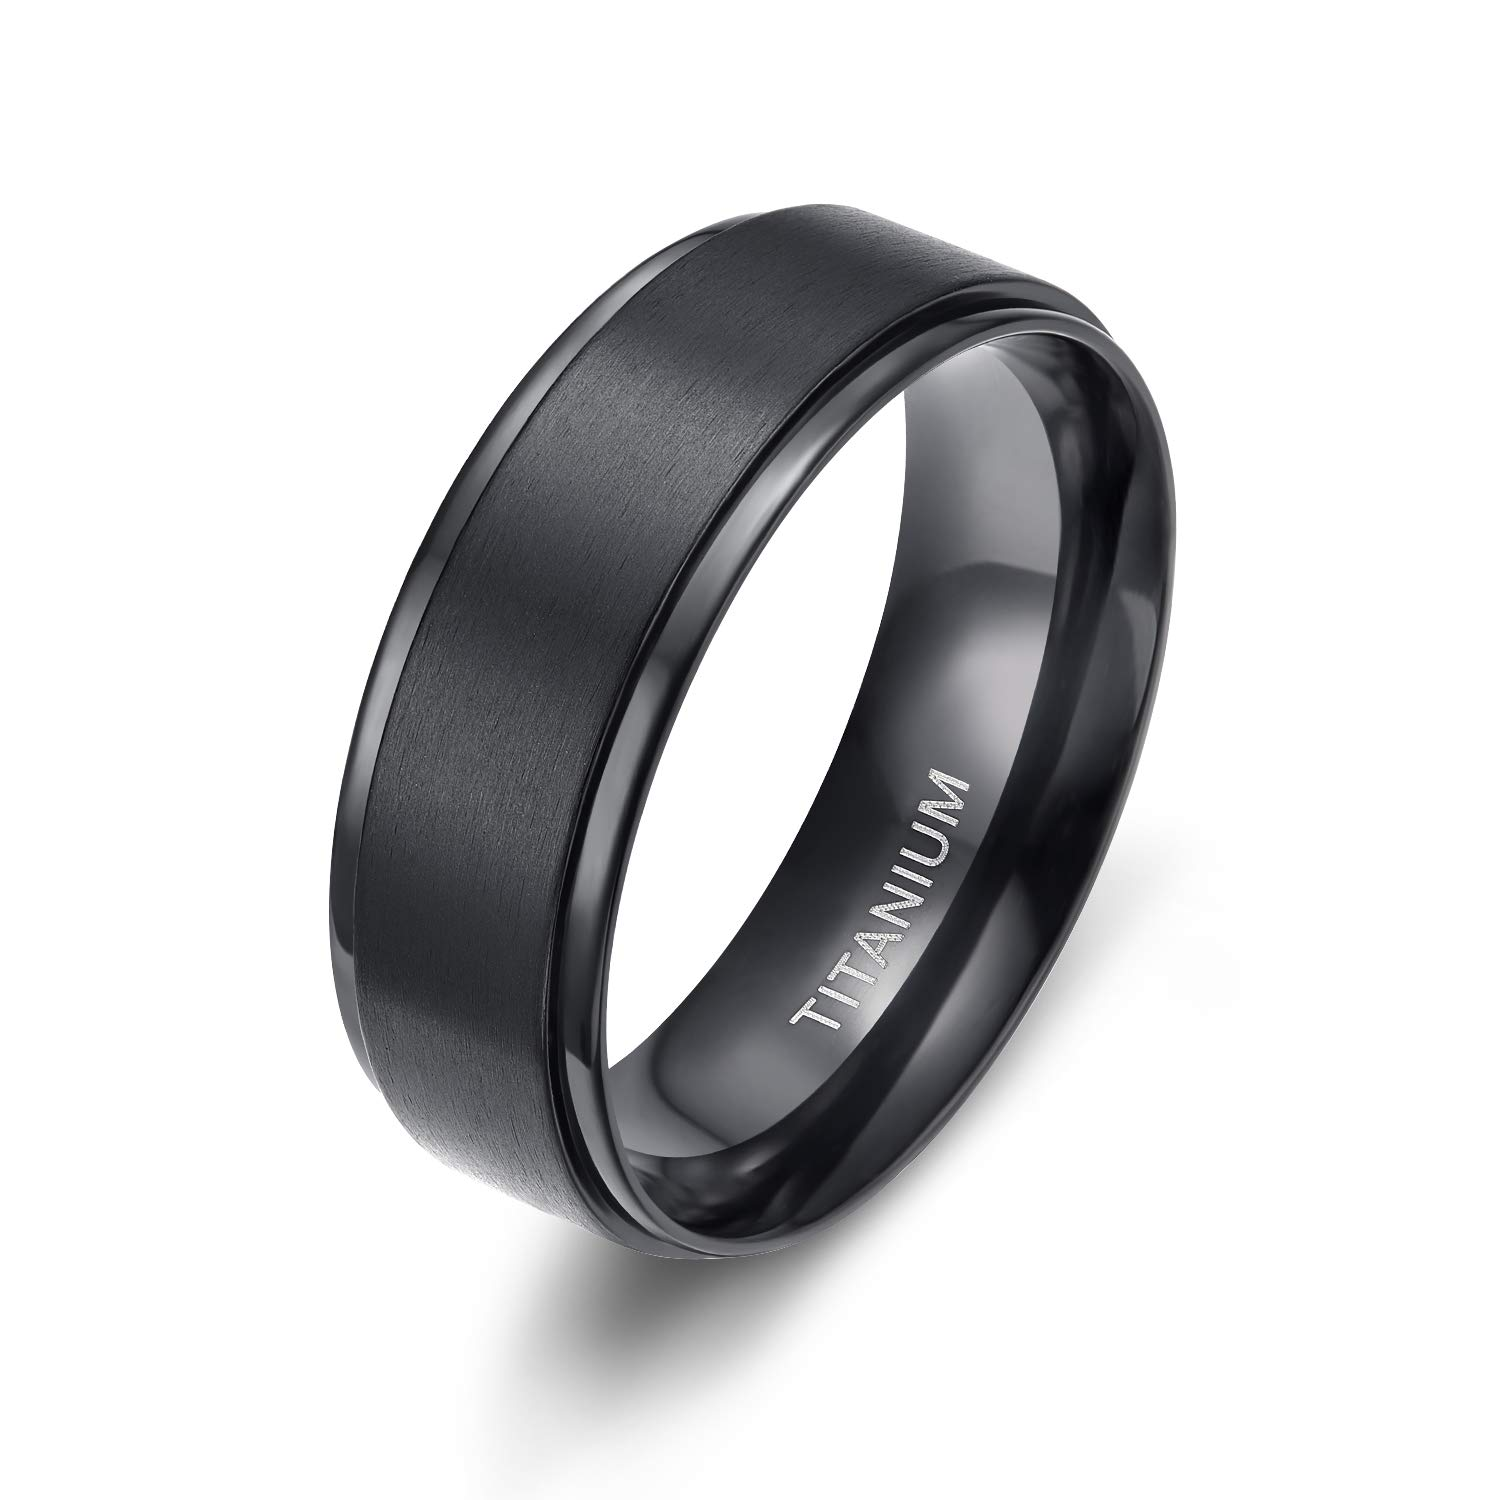 TIGRADE 8MM Comfort Fit Titanium Wedding Band | Engagement Ring with Black Plated and Brushed Top finish | Grooved Polished Edges(9.5)